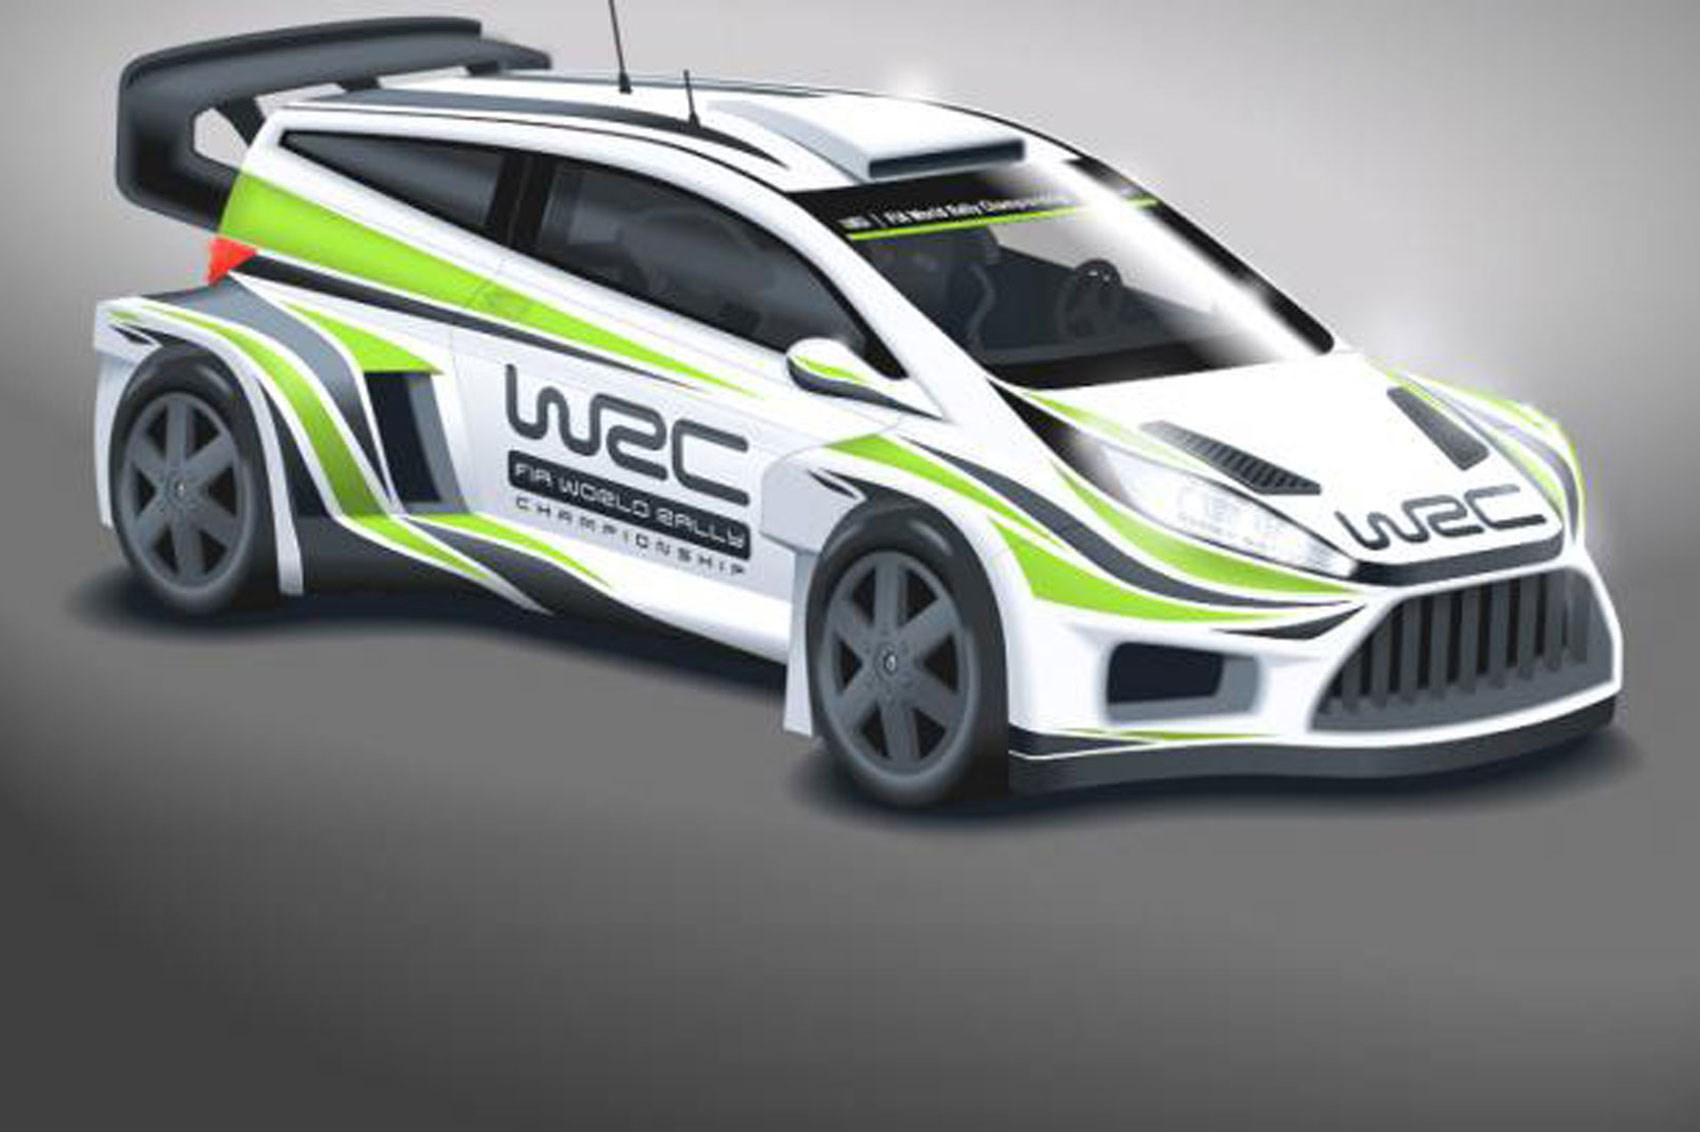 Ultrablogus  Marvelous Wild New Look For Wrc Cars In  By Car Magazine With Remarkable Wrc Cars Will Get Wider Bodies Bigger Wings And More Power For  With Alluring Toyota Avensis Interior Also Toyota Landcruiser Interior In Addition Honda Ep Interior And  Audi S Interior As Well As Infiniti M Interior Additionally Range Rover  Interior From Carmagazinecouk With Ultrablogus  Remarkable Wild New Look For Wrc Cars In  By Car Magazine With Alluring Wrc Cars Will Get Wider Bodies Bigger Wings And More Power For  And Marvelous Toyota Avensis Interior Also Toyota Landcruiser Interior In Addition Honda Ep Interior From Carmagazinecouk